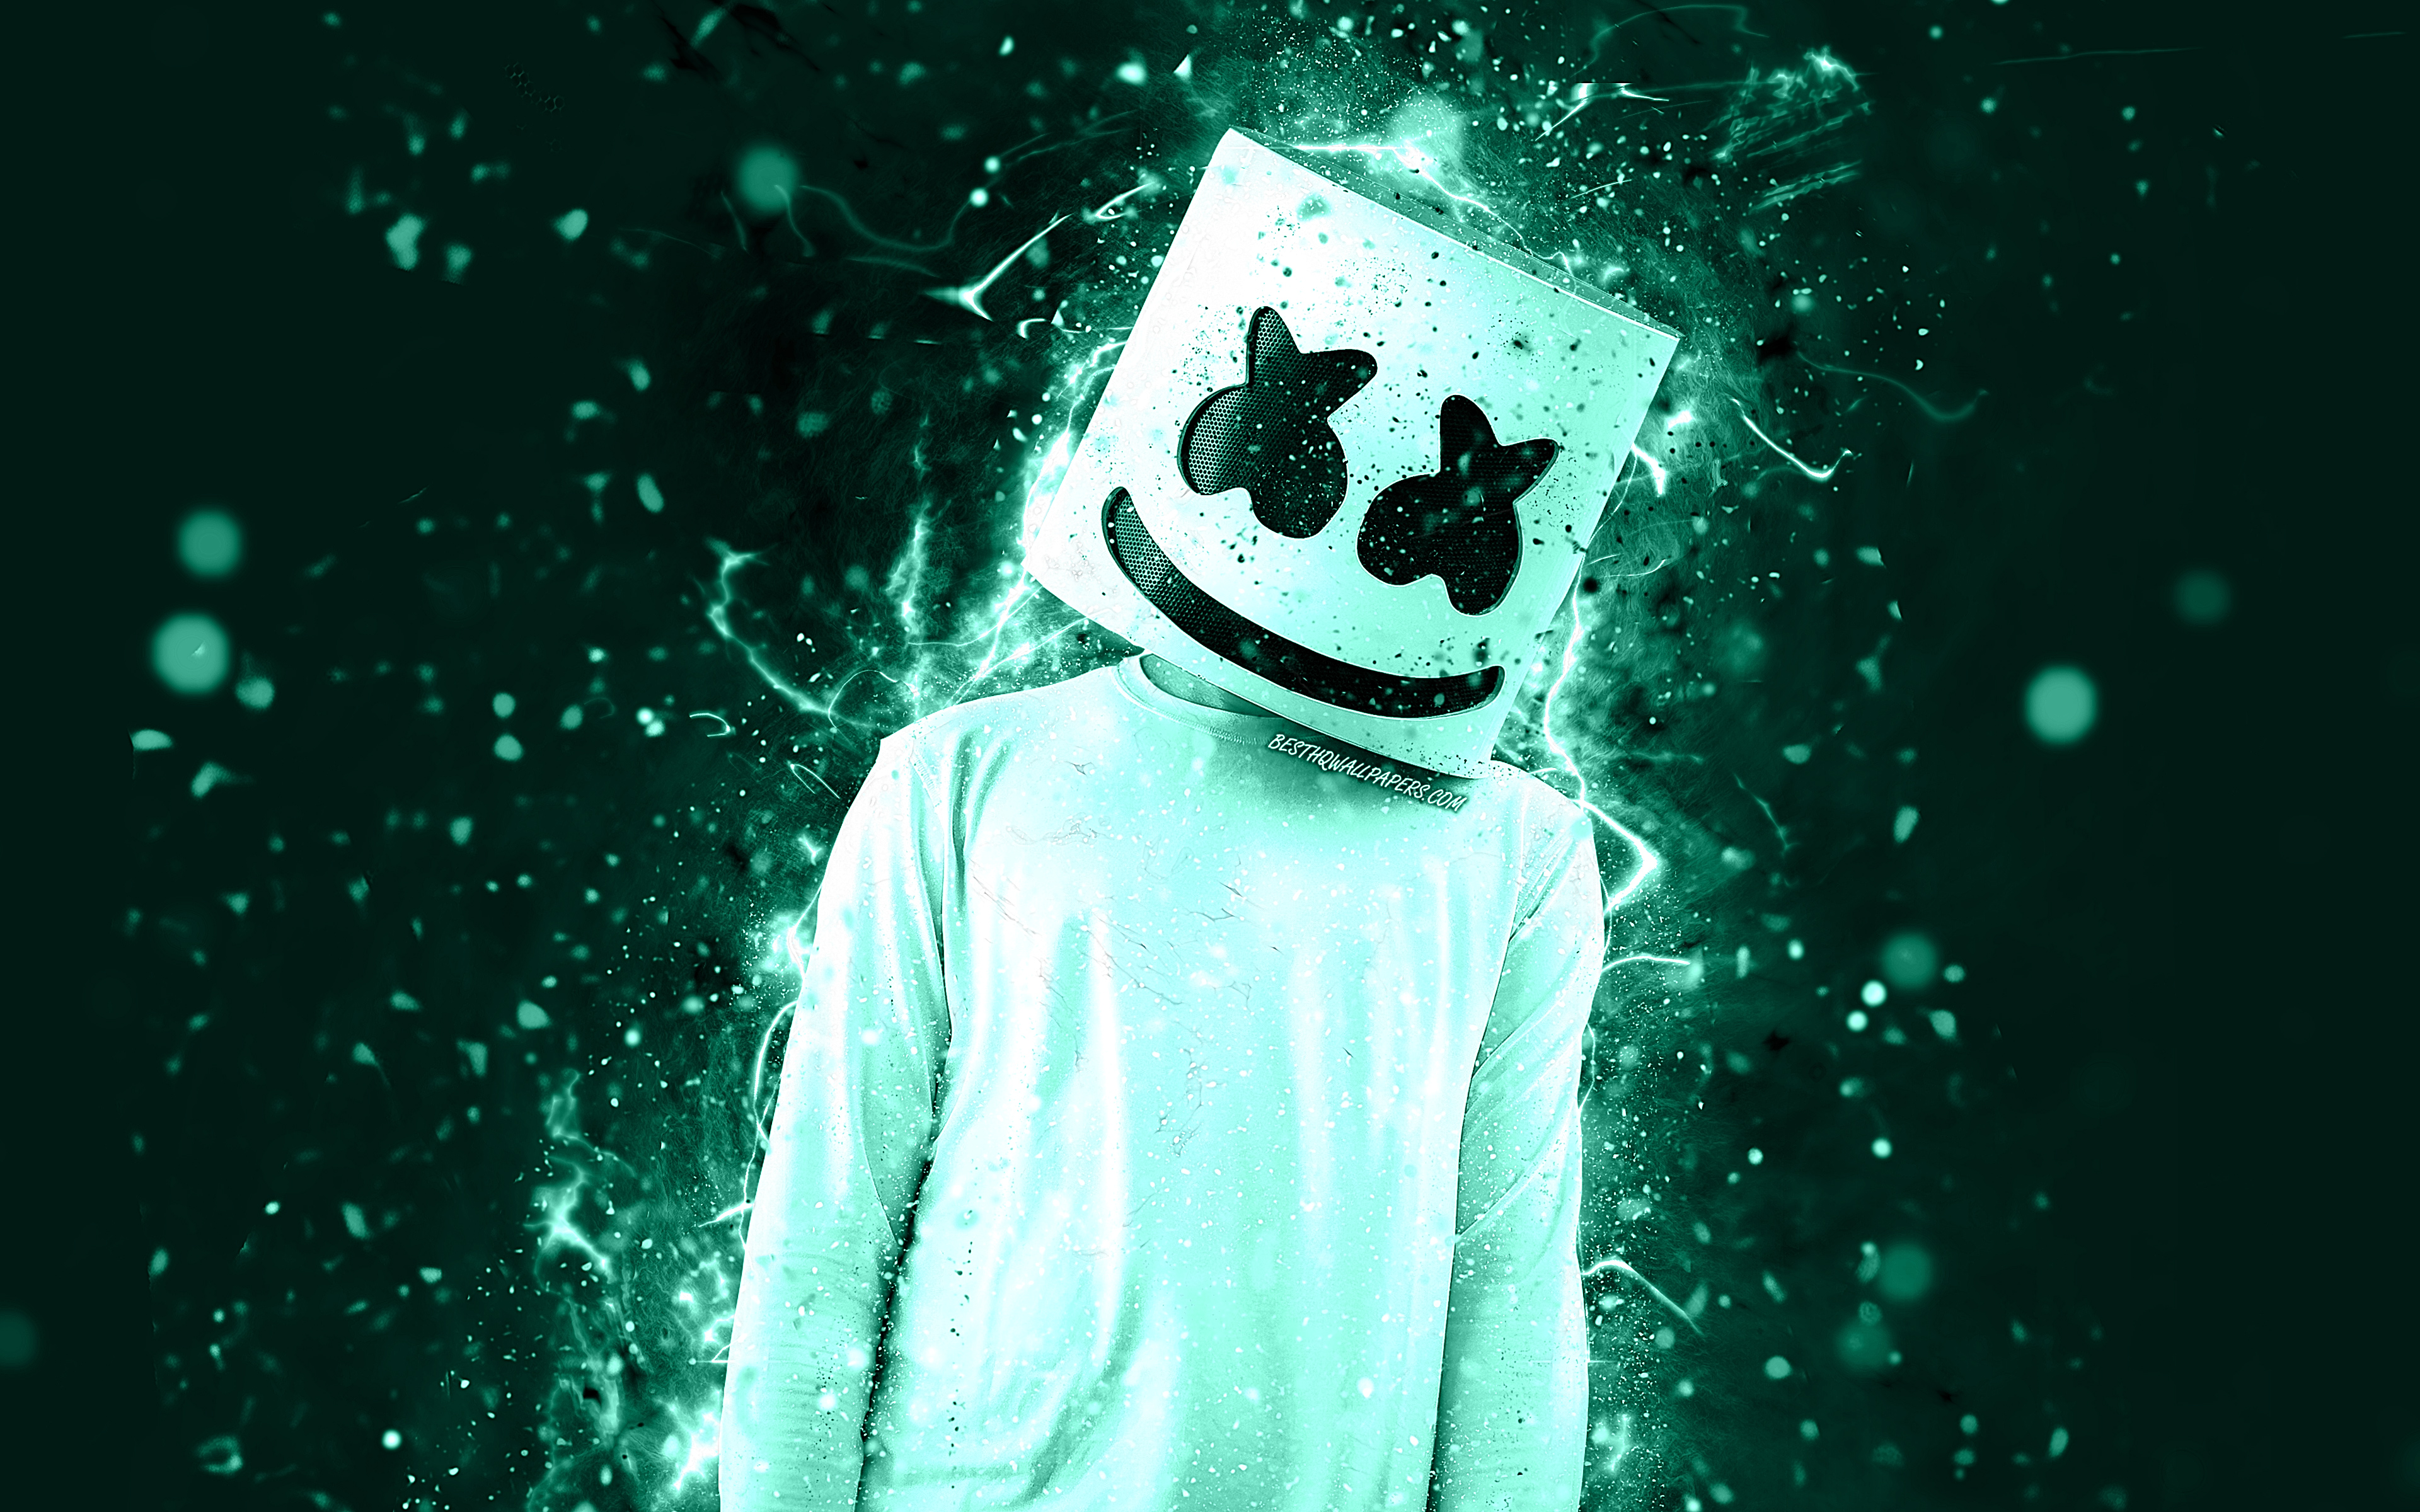 christopher comstock, 4k, dj marshmello, türkis neon, american dj, marshmello 4k -, grafik -, fan-kunst, kreativ, marshmello dj, superstars, marshmello, djs